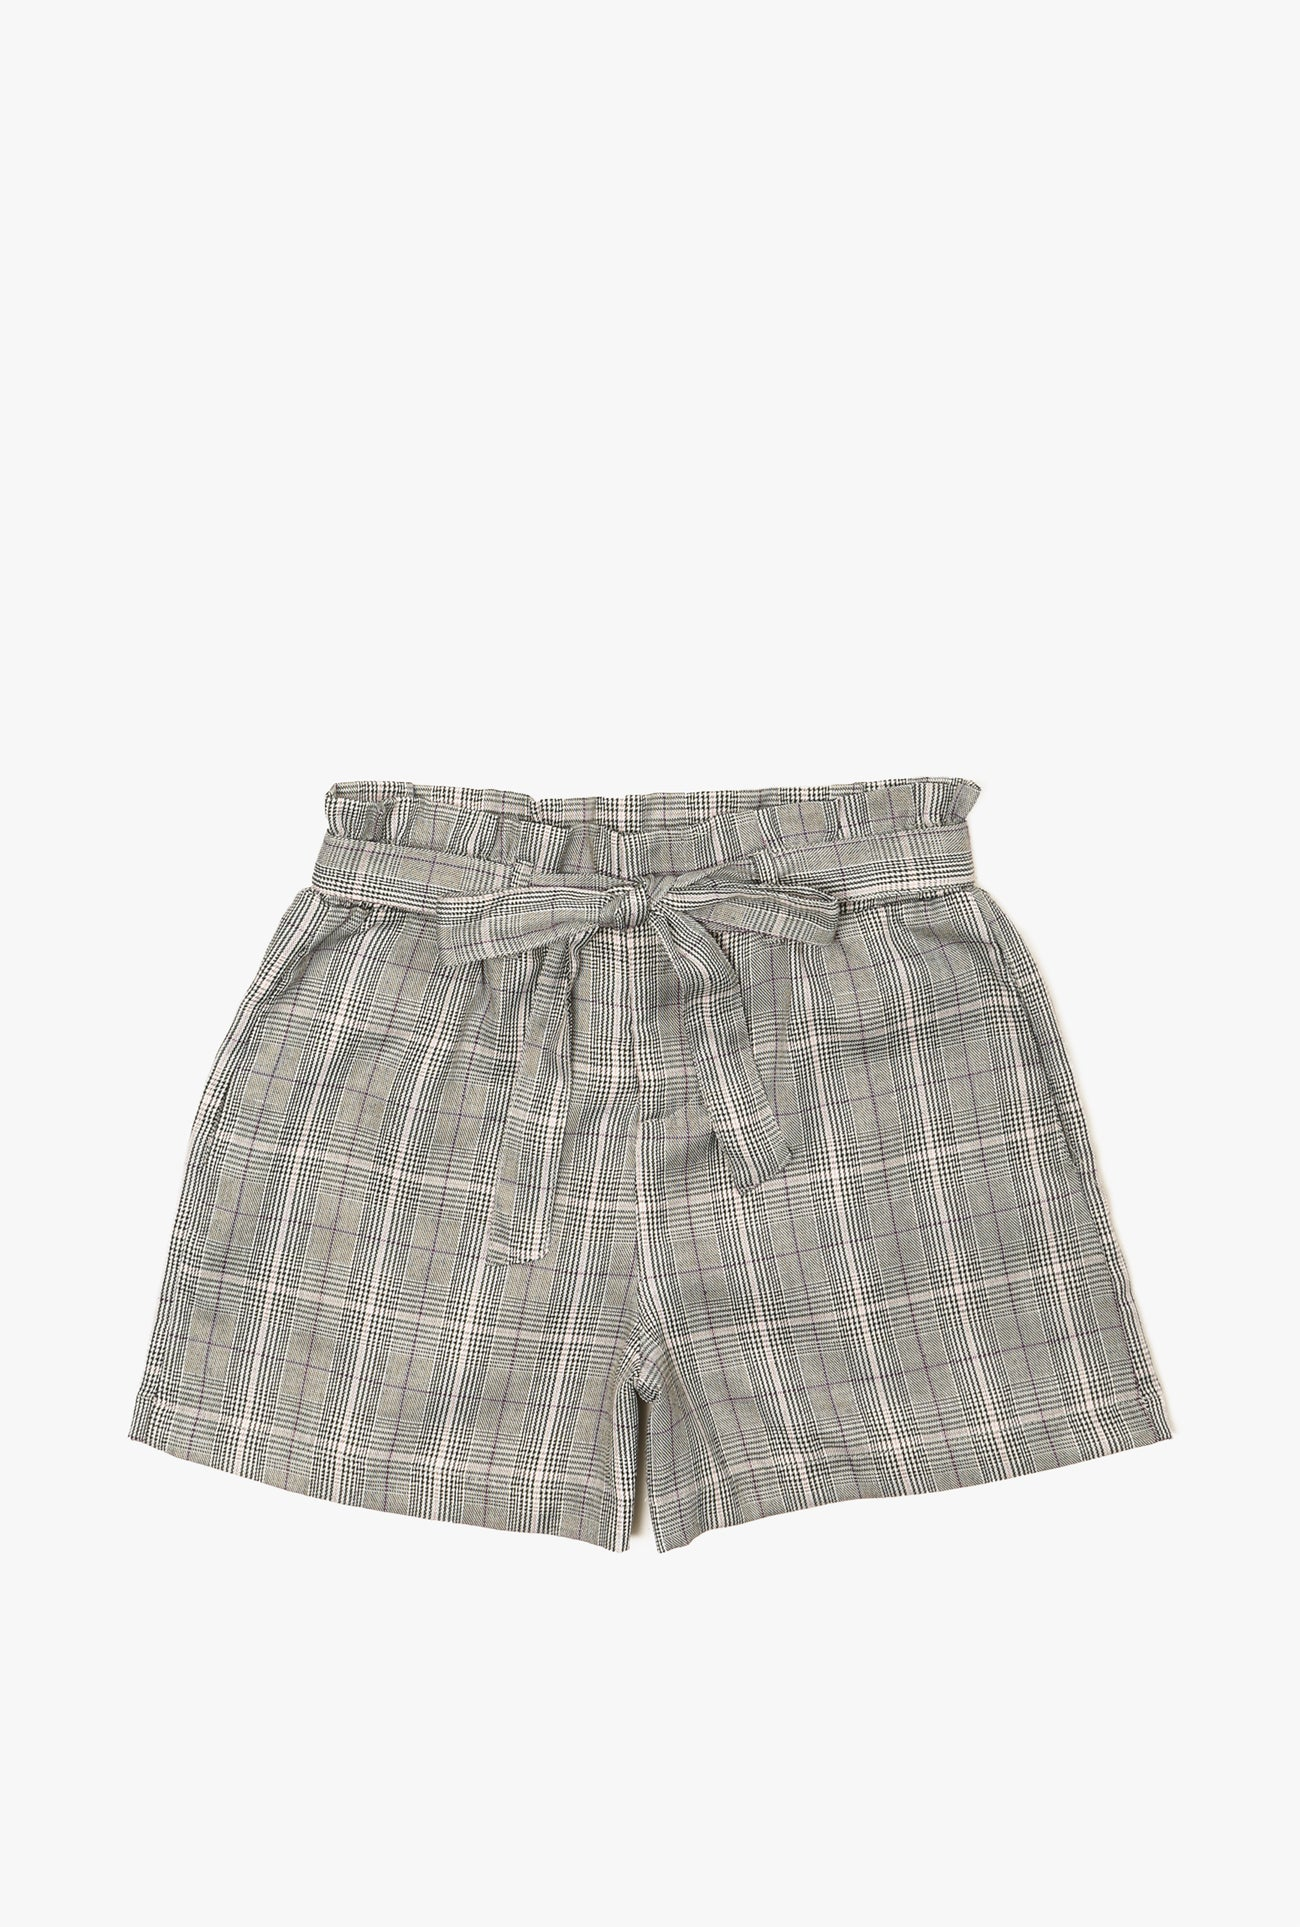 Plaid High Waist Tie Shorts